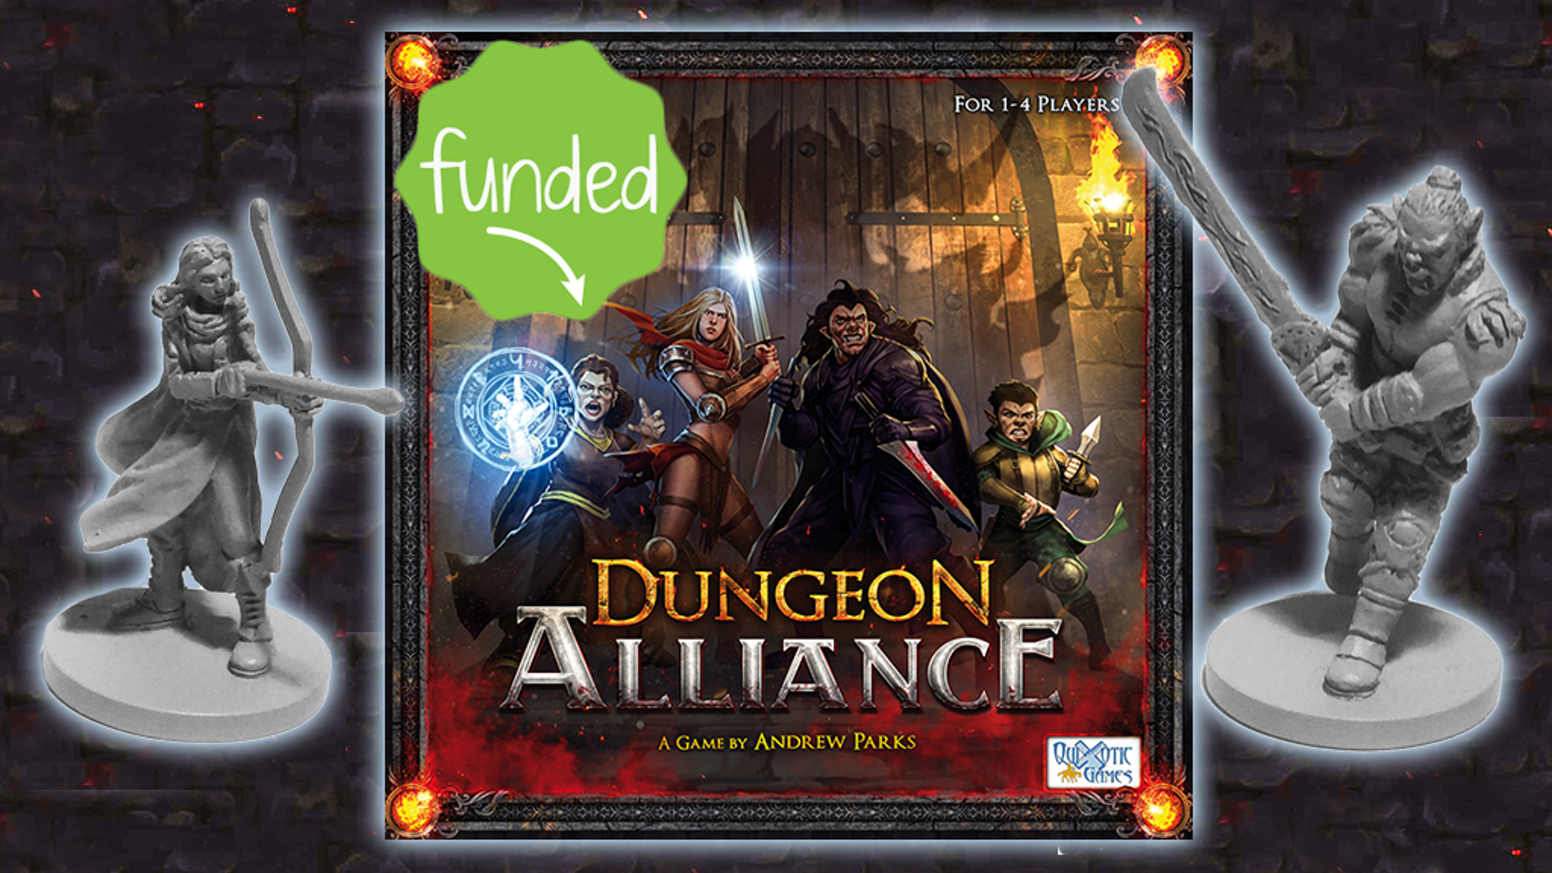 Dungeon Alliance is a deck-building, dungeon-crawling miniatures adventure game. Play competitive, cooperative, or solo!